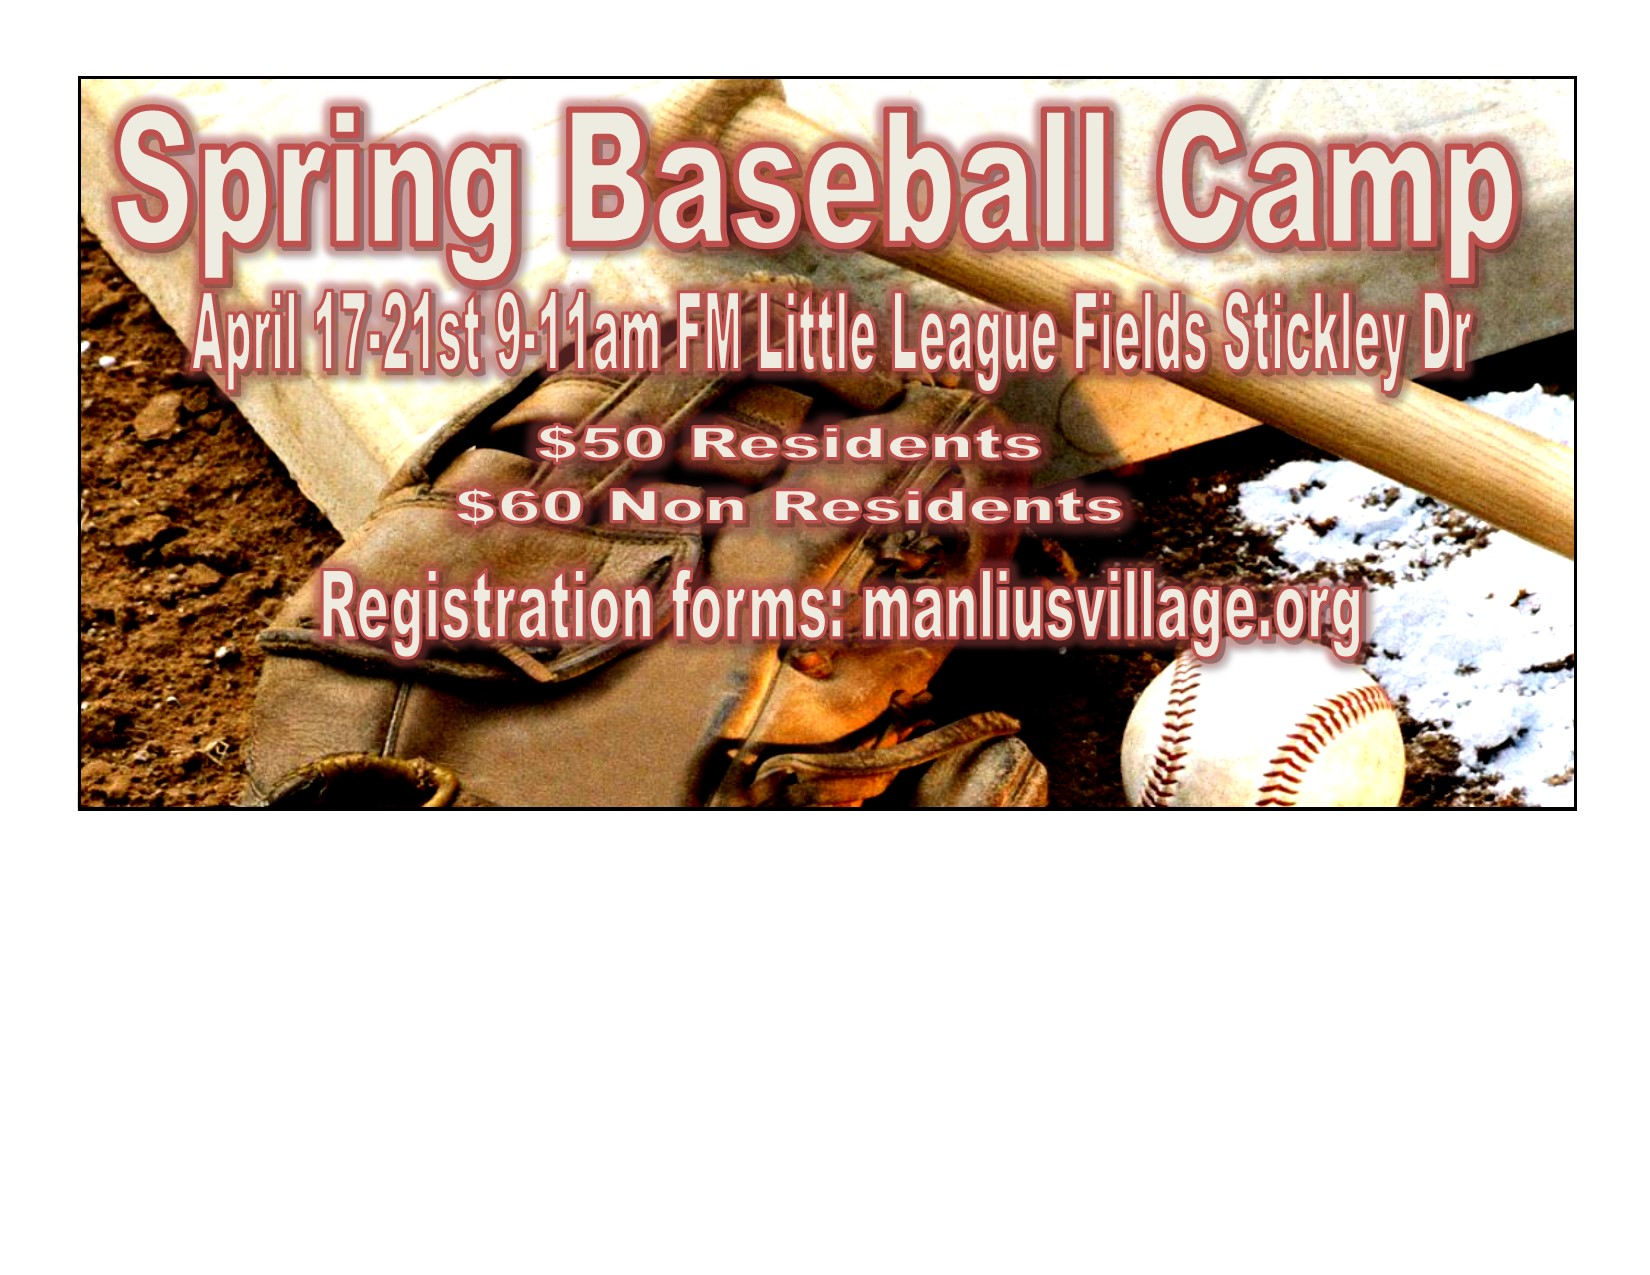 spring baseball camp facebook 2017.jpg